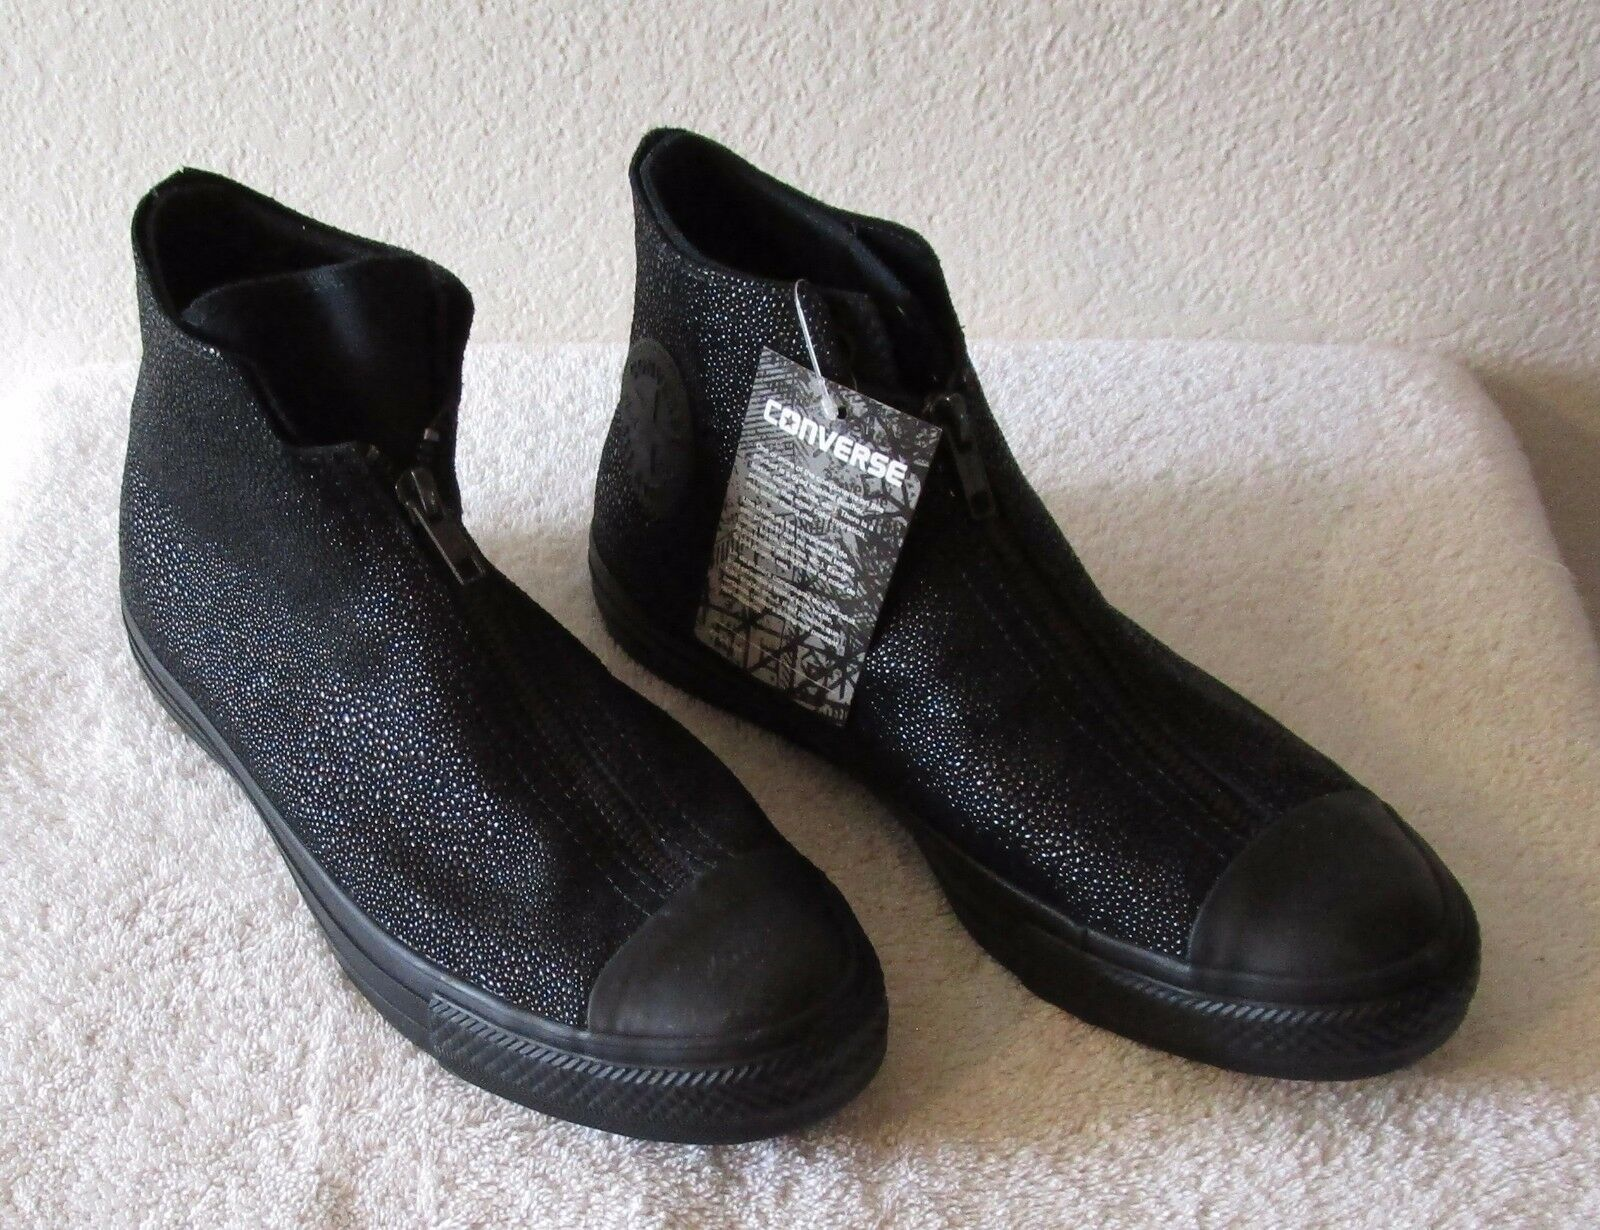 NWT Converse Womens CT Ray All Star Shroud Sting Ray CT Leather Shoes Black MSRP$120 015915